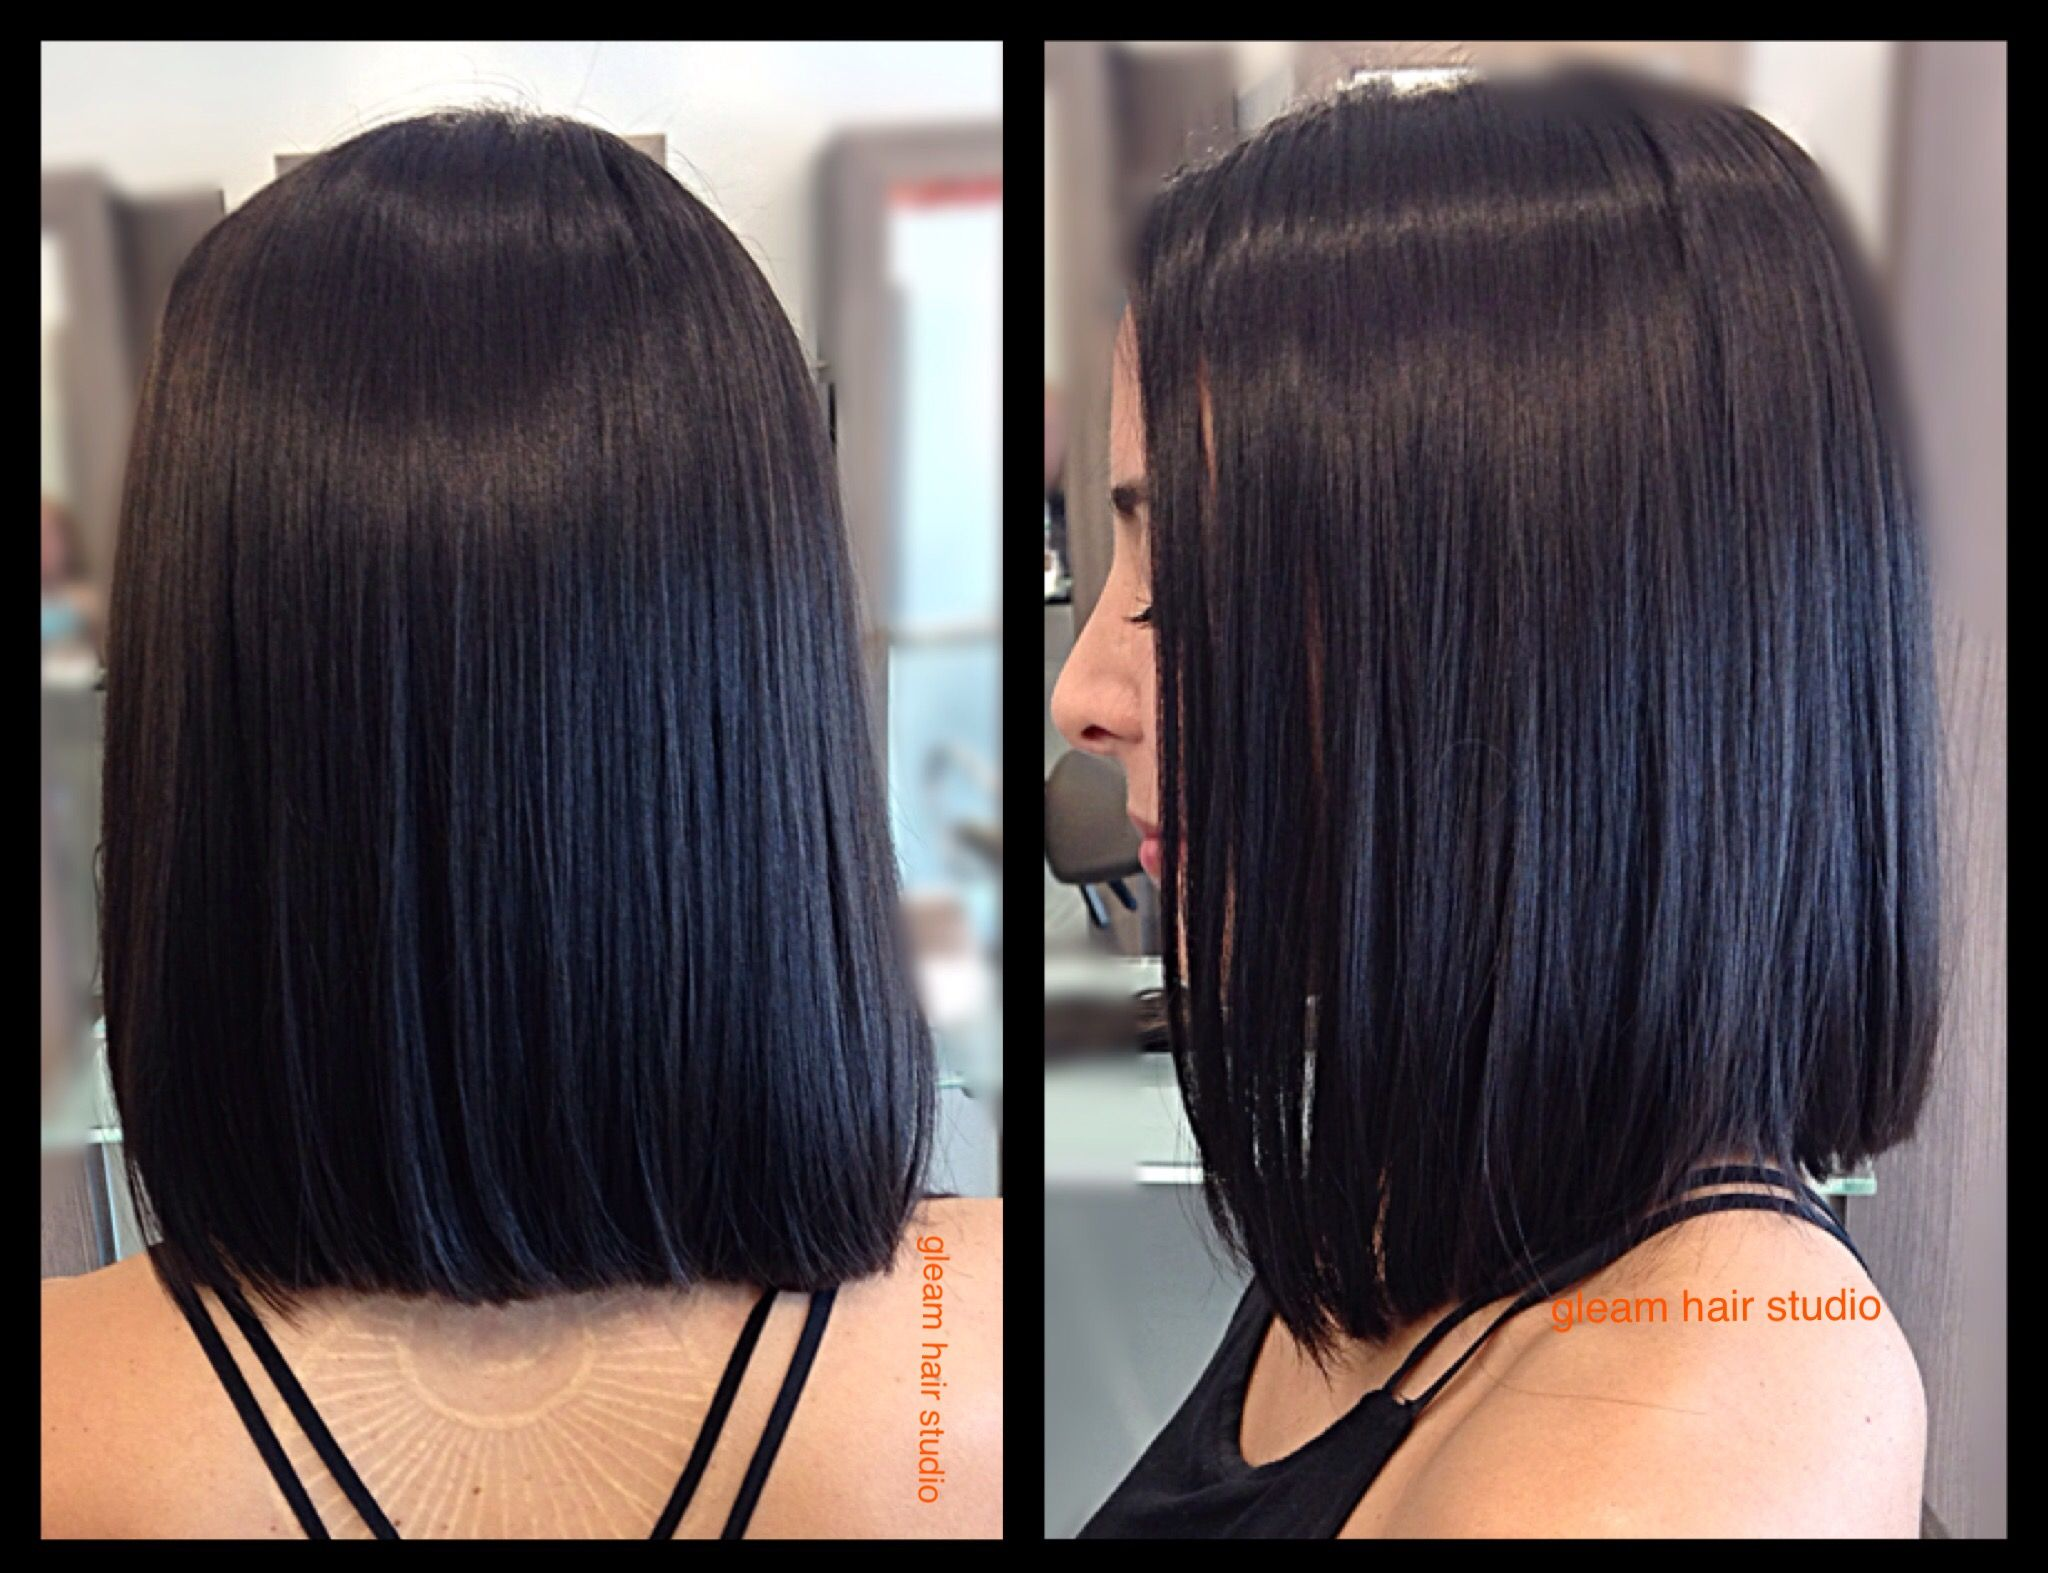 Blunt Bob Done By Carole Gleam Hair Studio Miami Best Hair Salon Hair Salon Miami Hair Studio